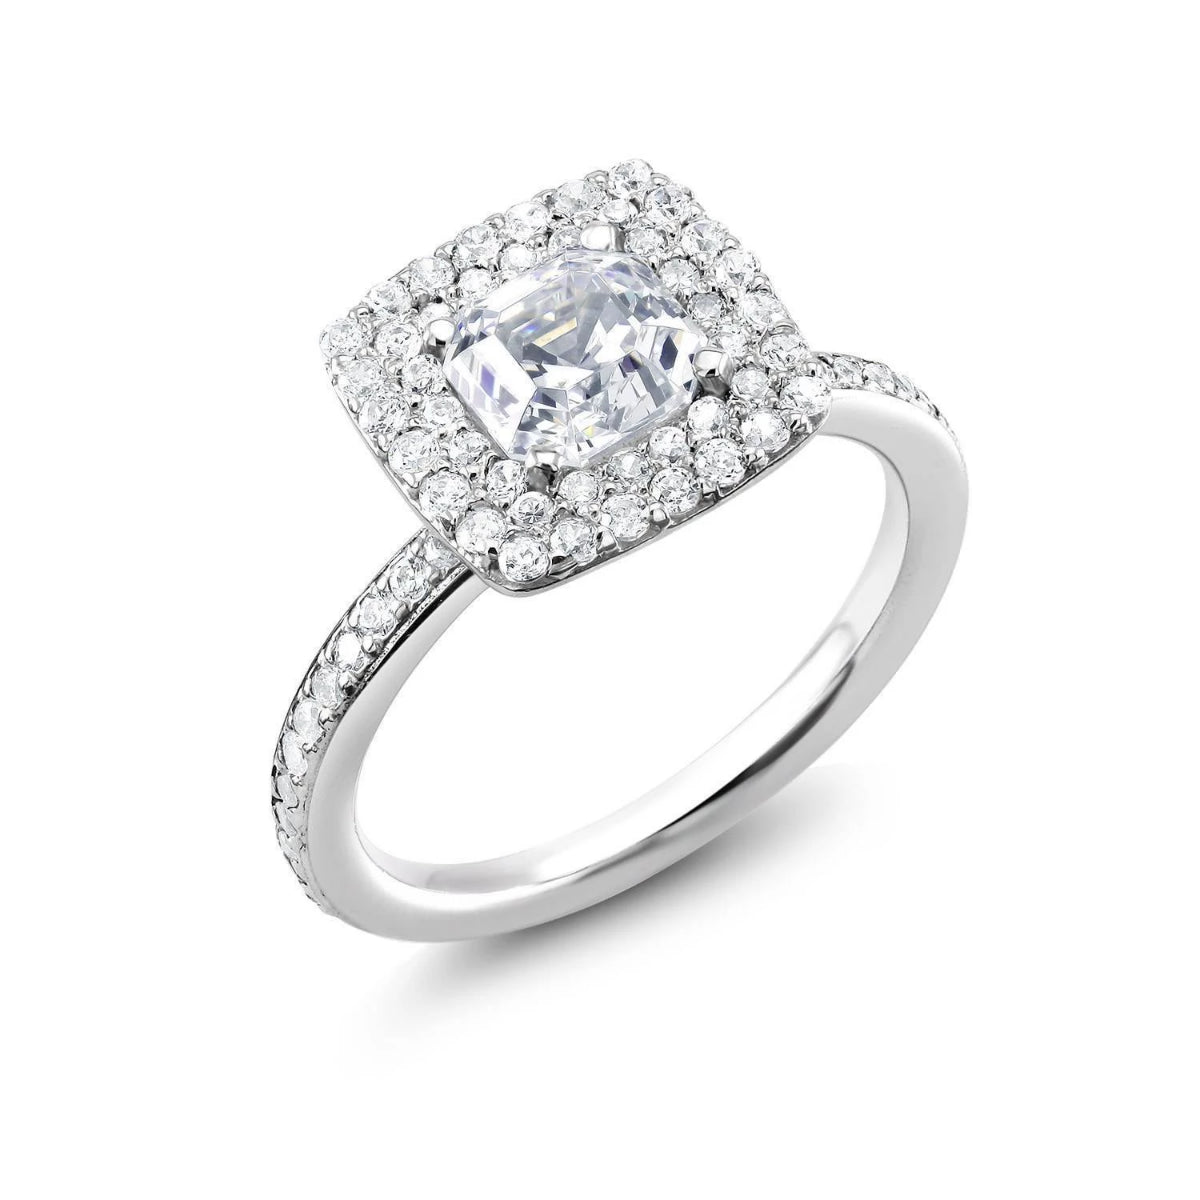 glamorous of rings house for traveler features engagement buy to s valentines garrard day five valentine elite